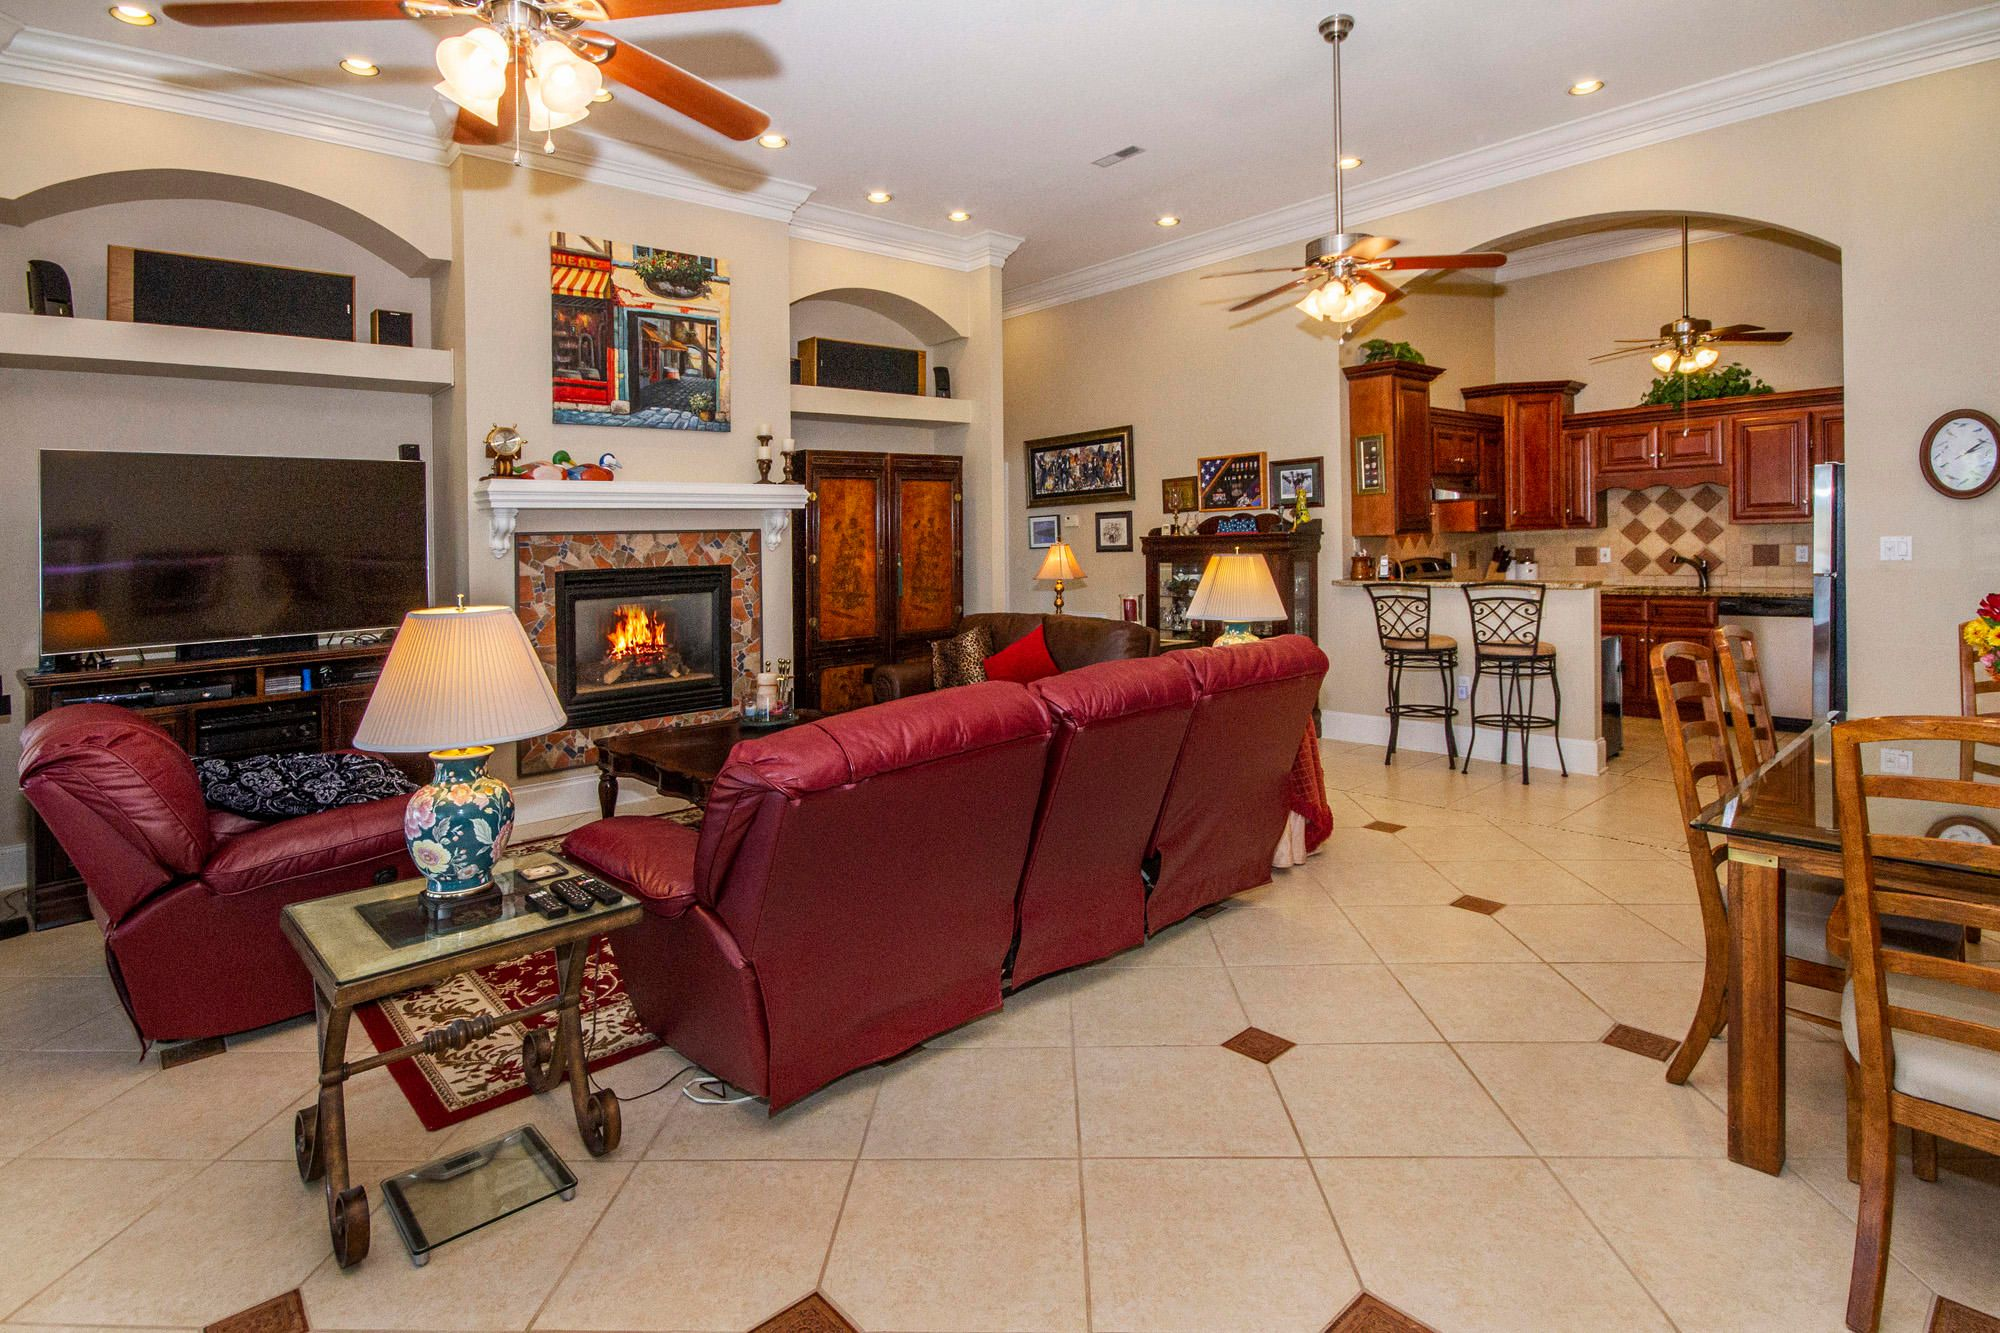 Gas Fireplace & Open to 2nd Kitchen